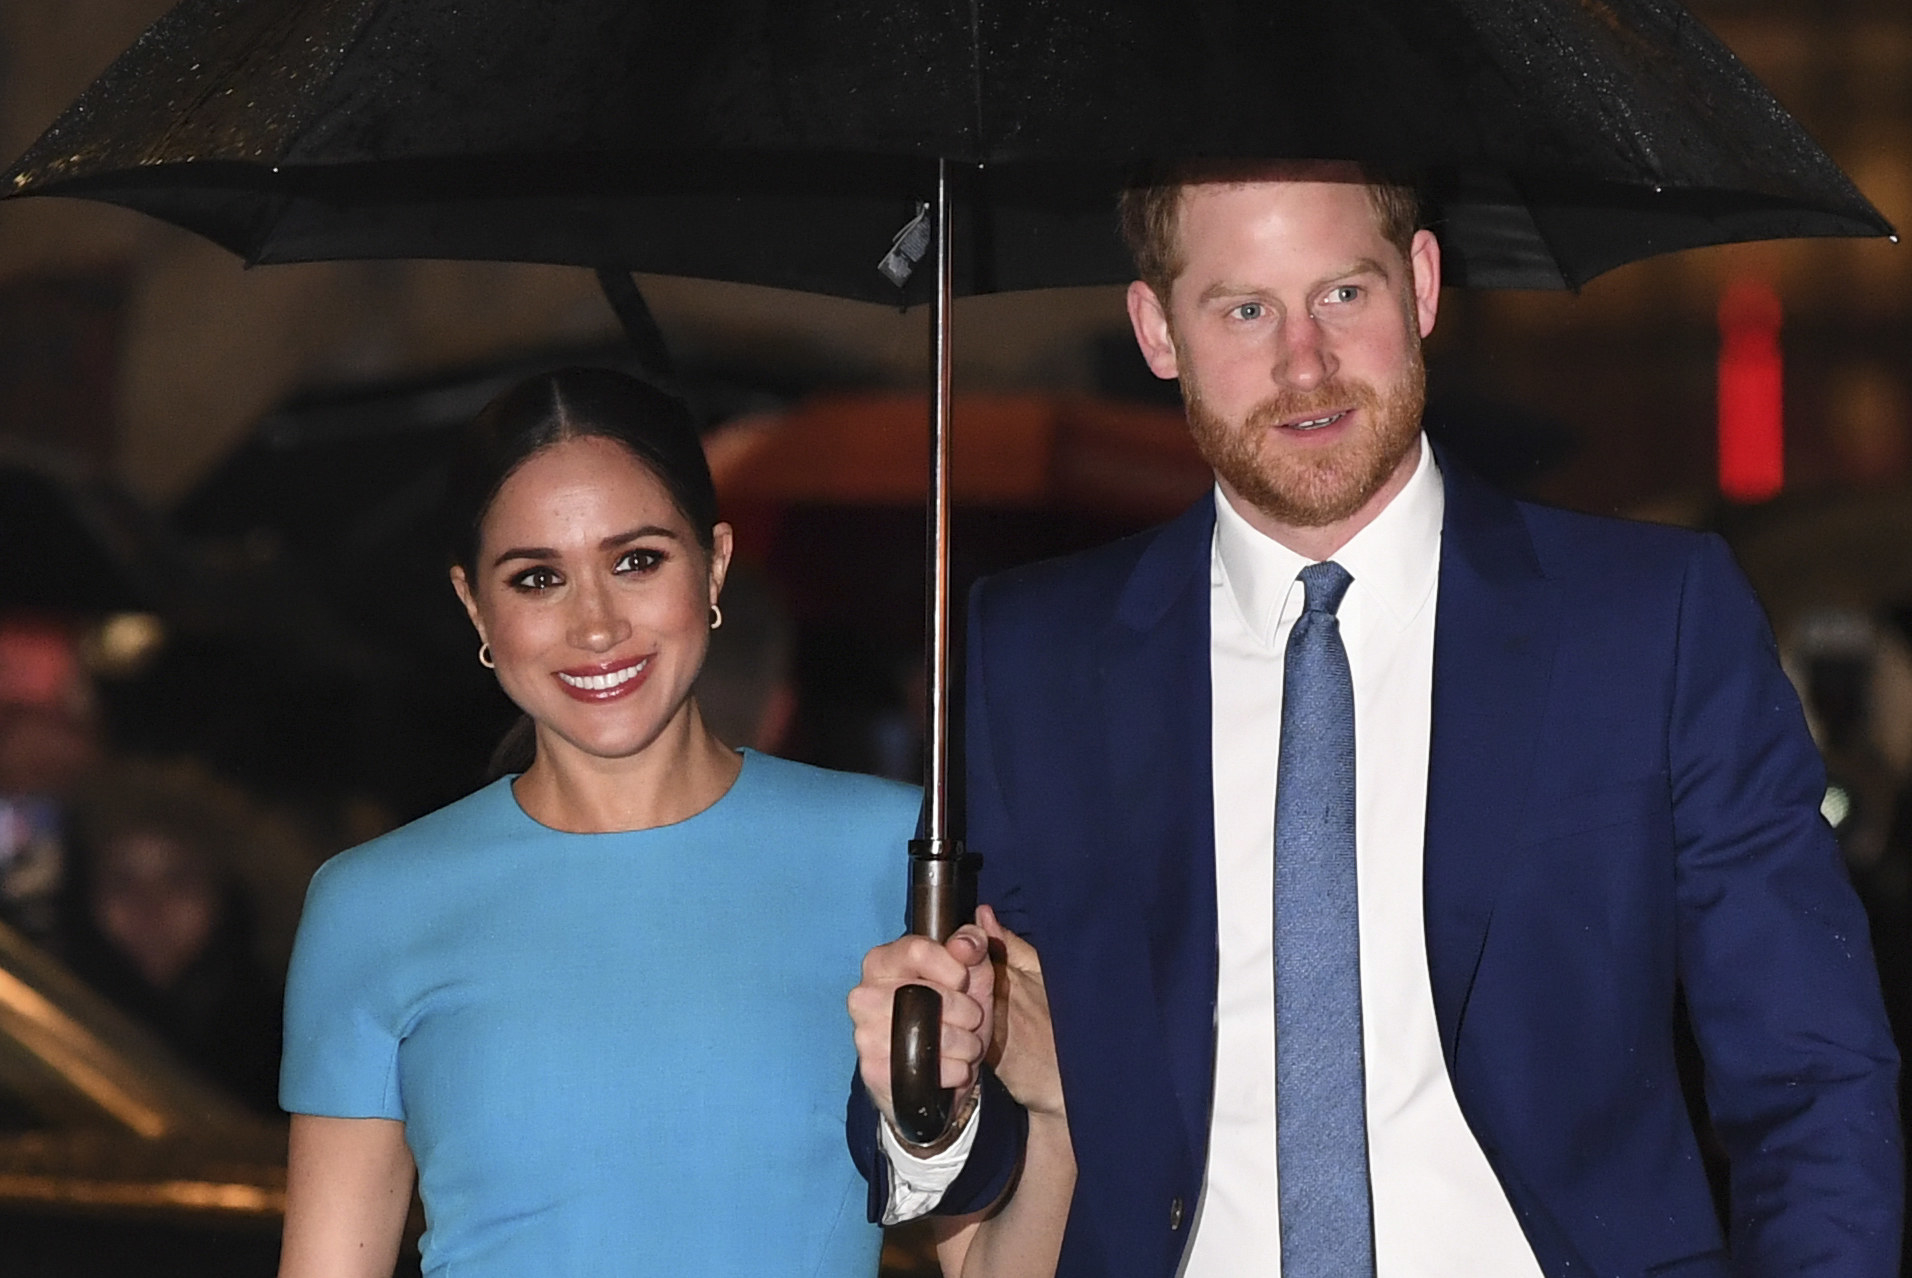 Meghan Markle and Prince Harry under an umbrella in London in March 2020